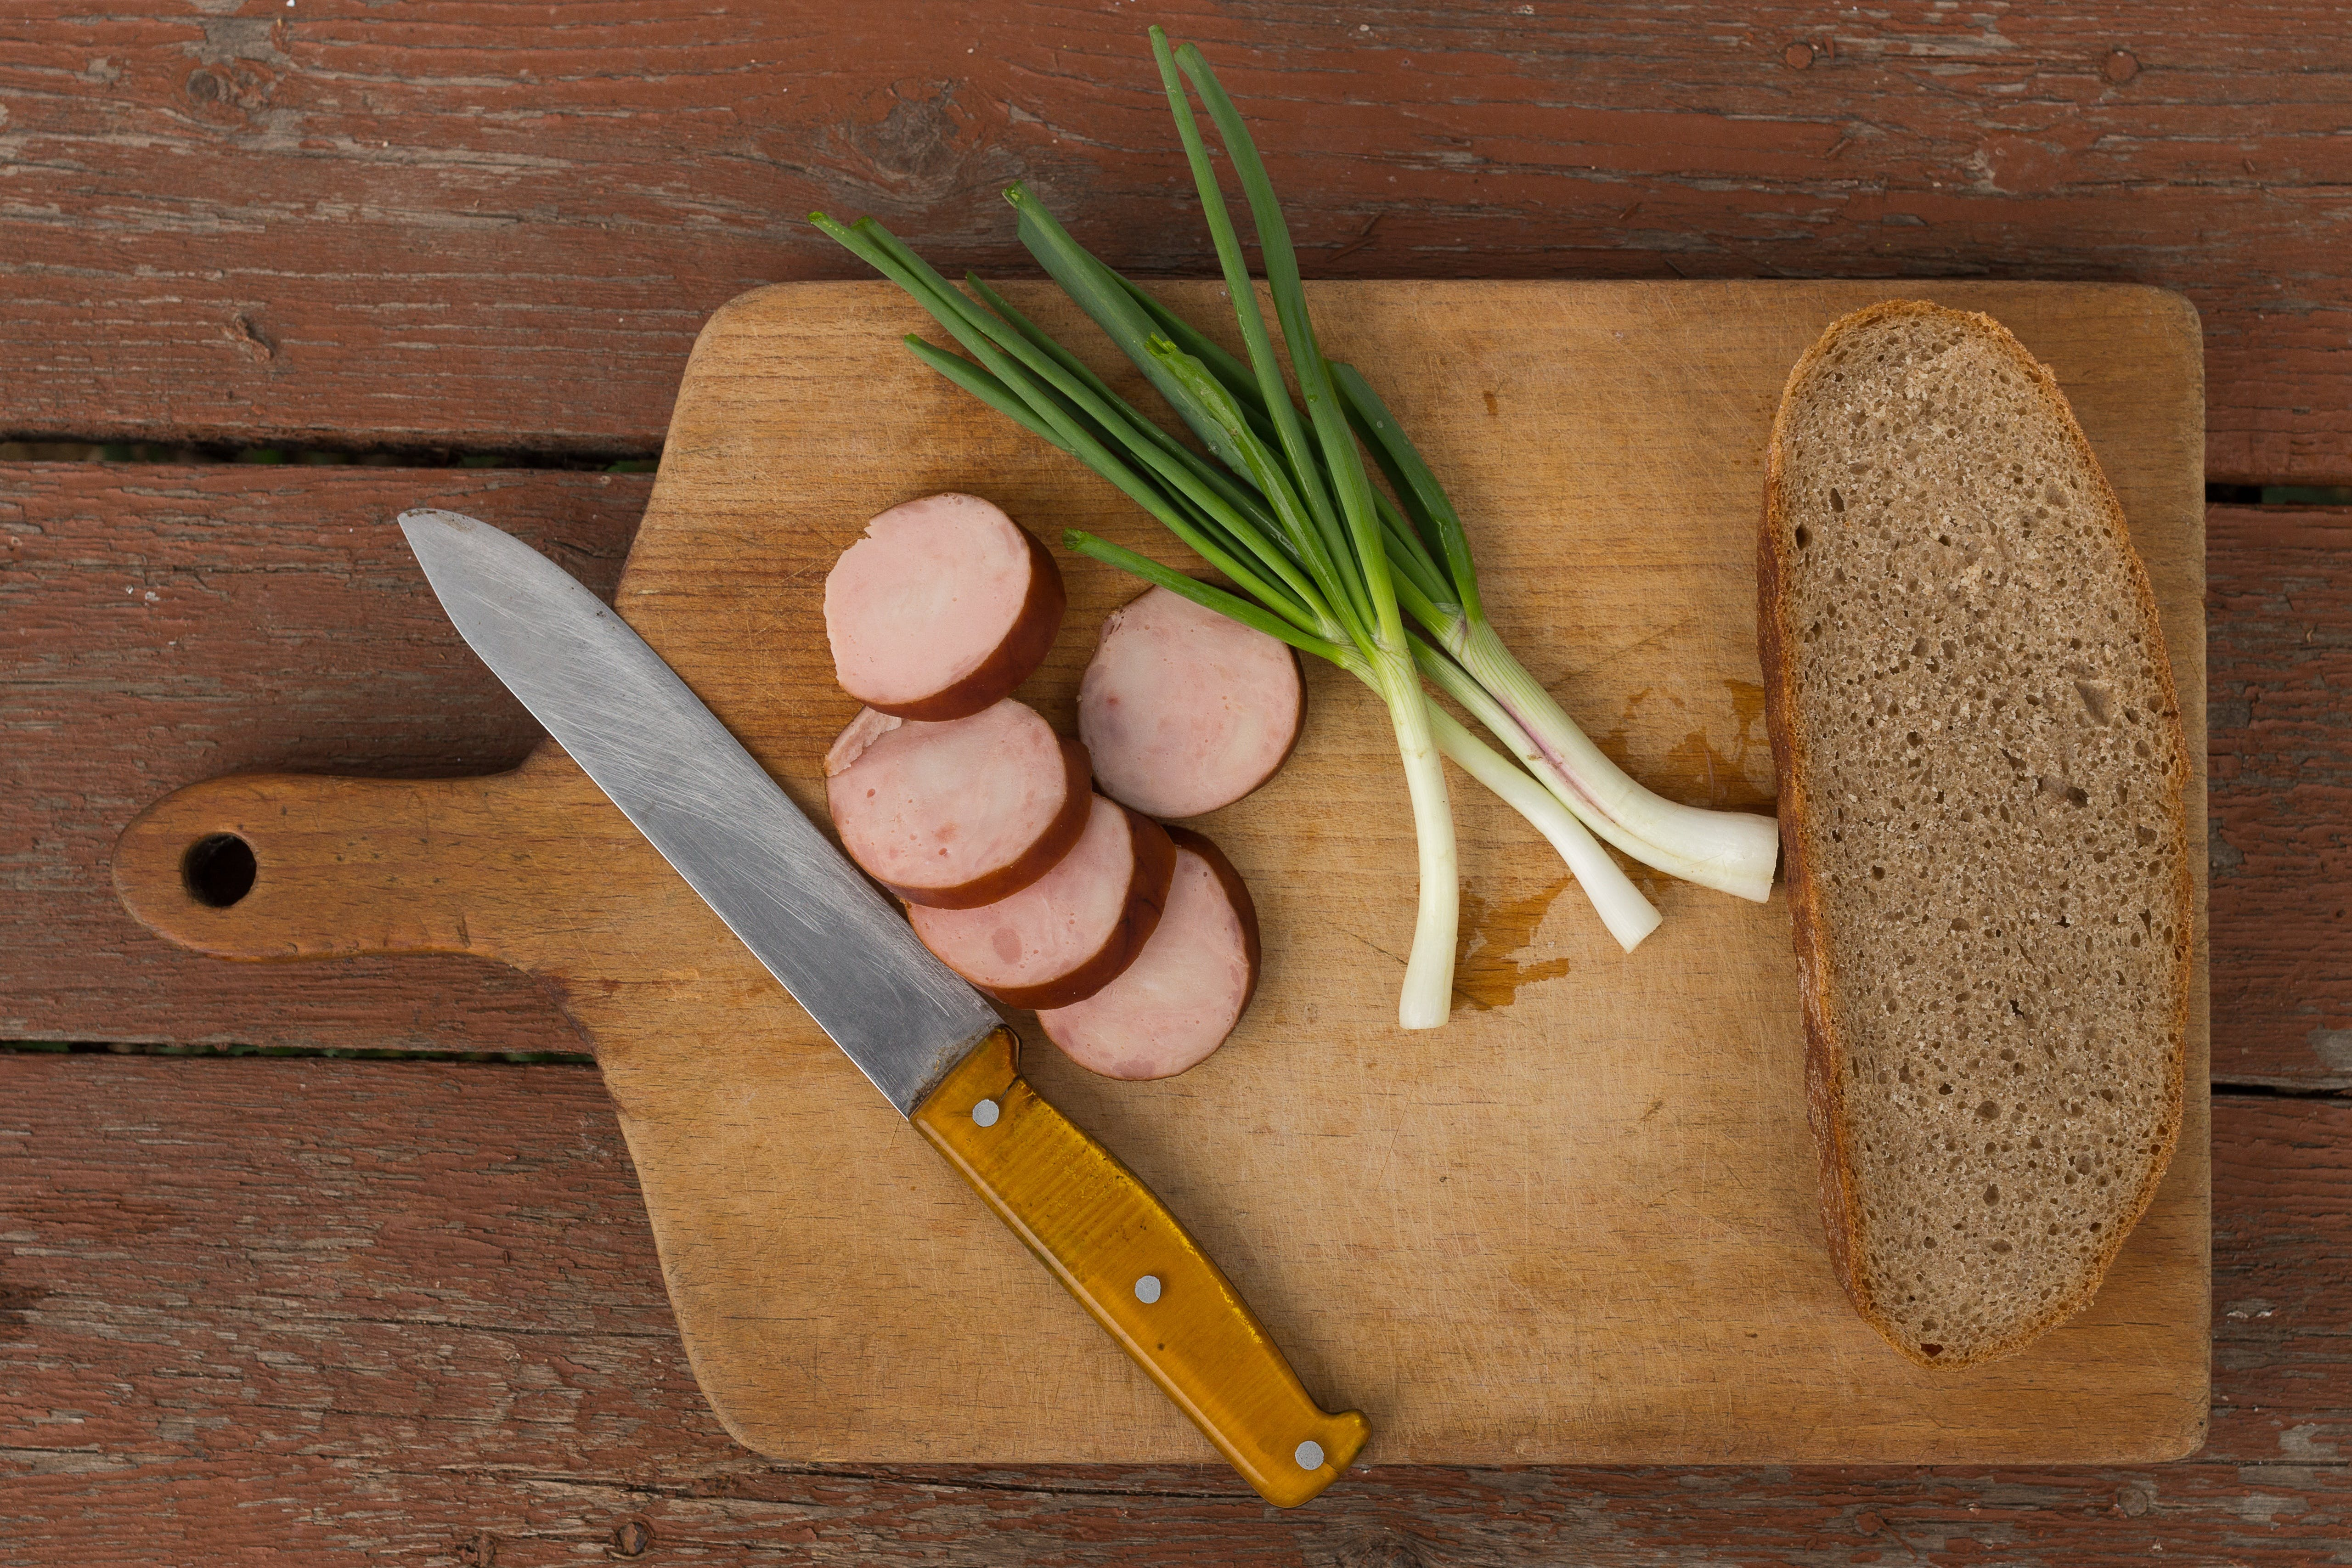 Kitchen Knife Next to Slice Bread on Chopping Board